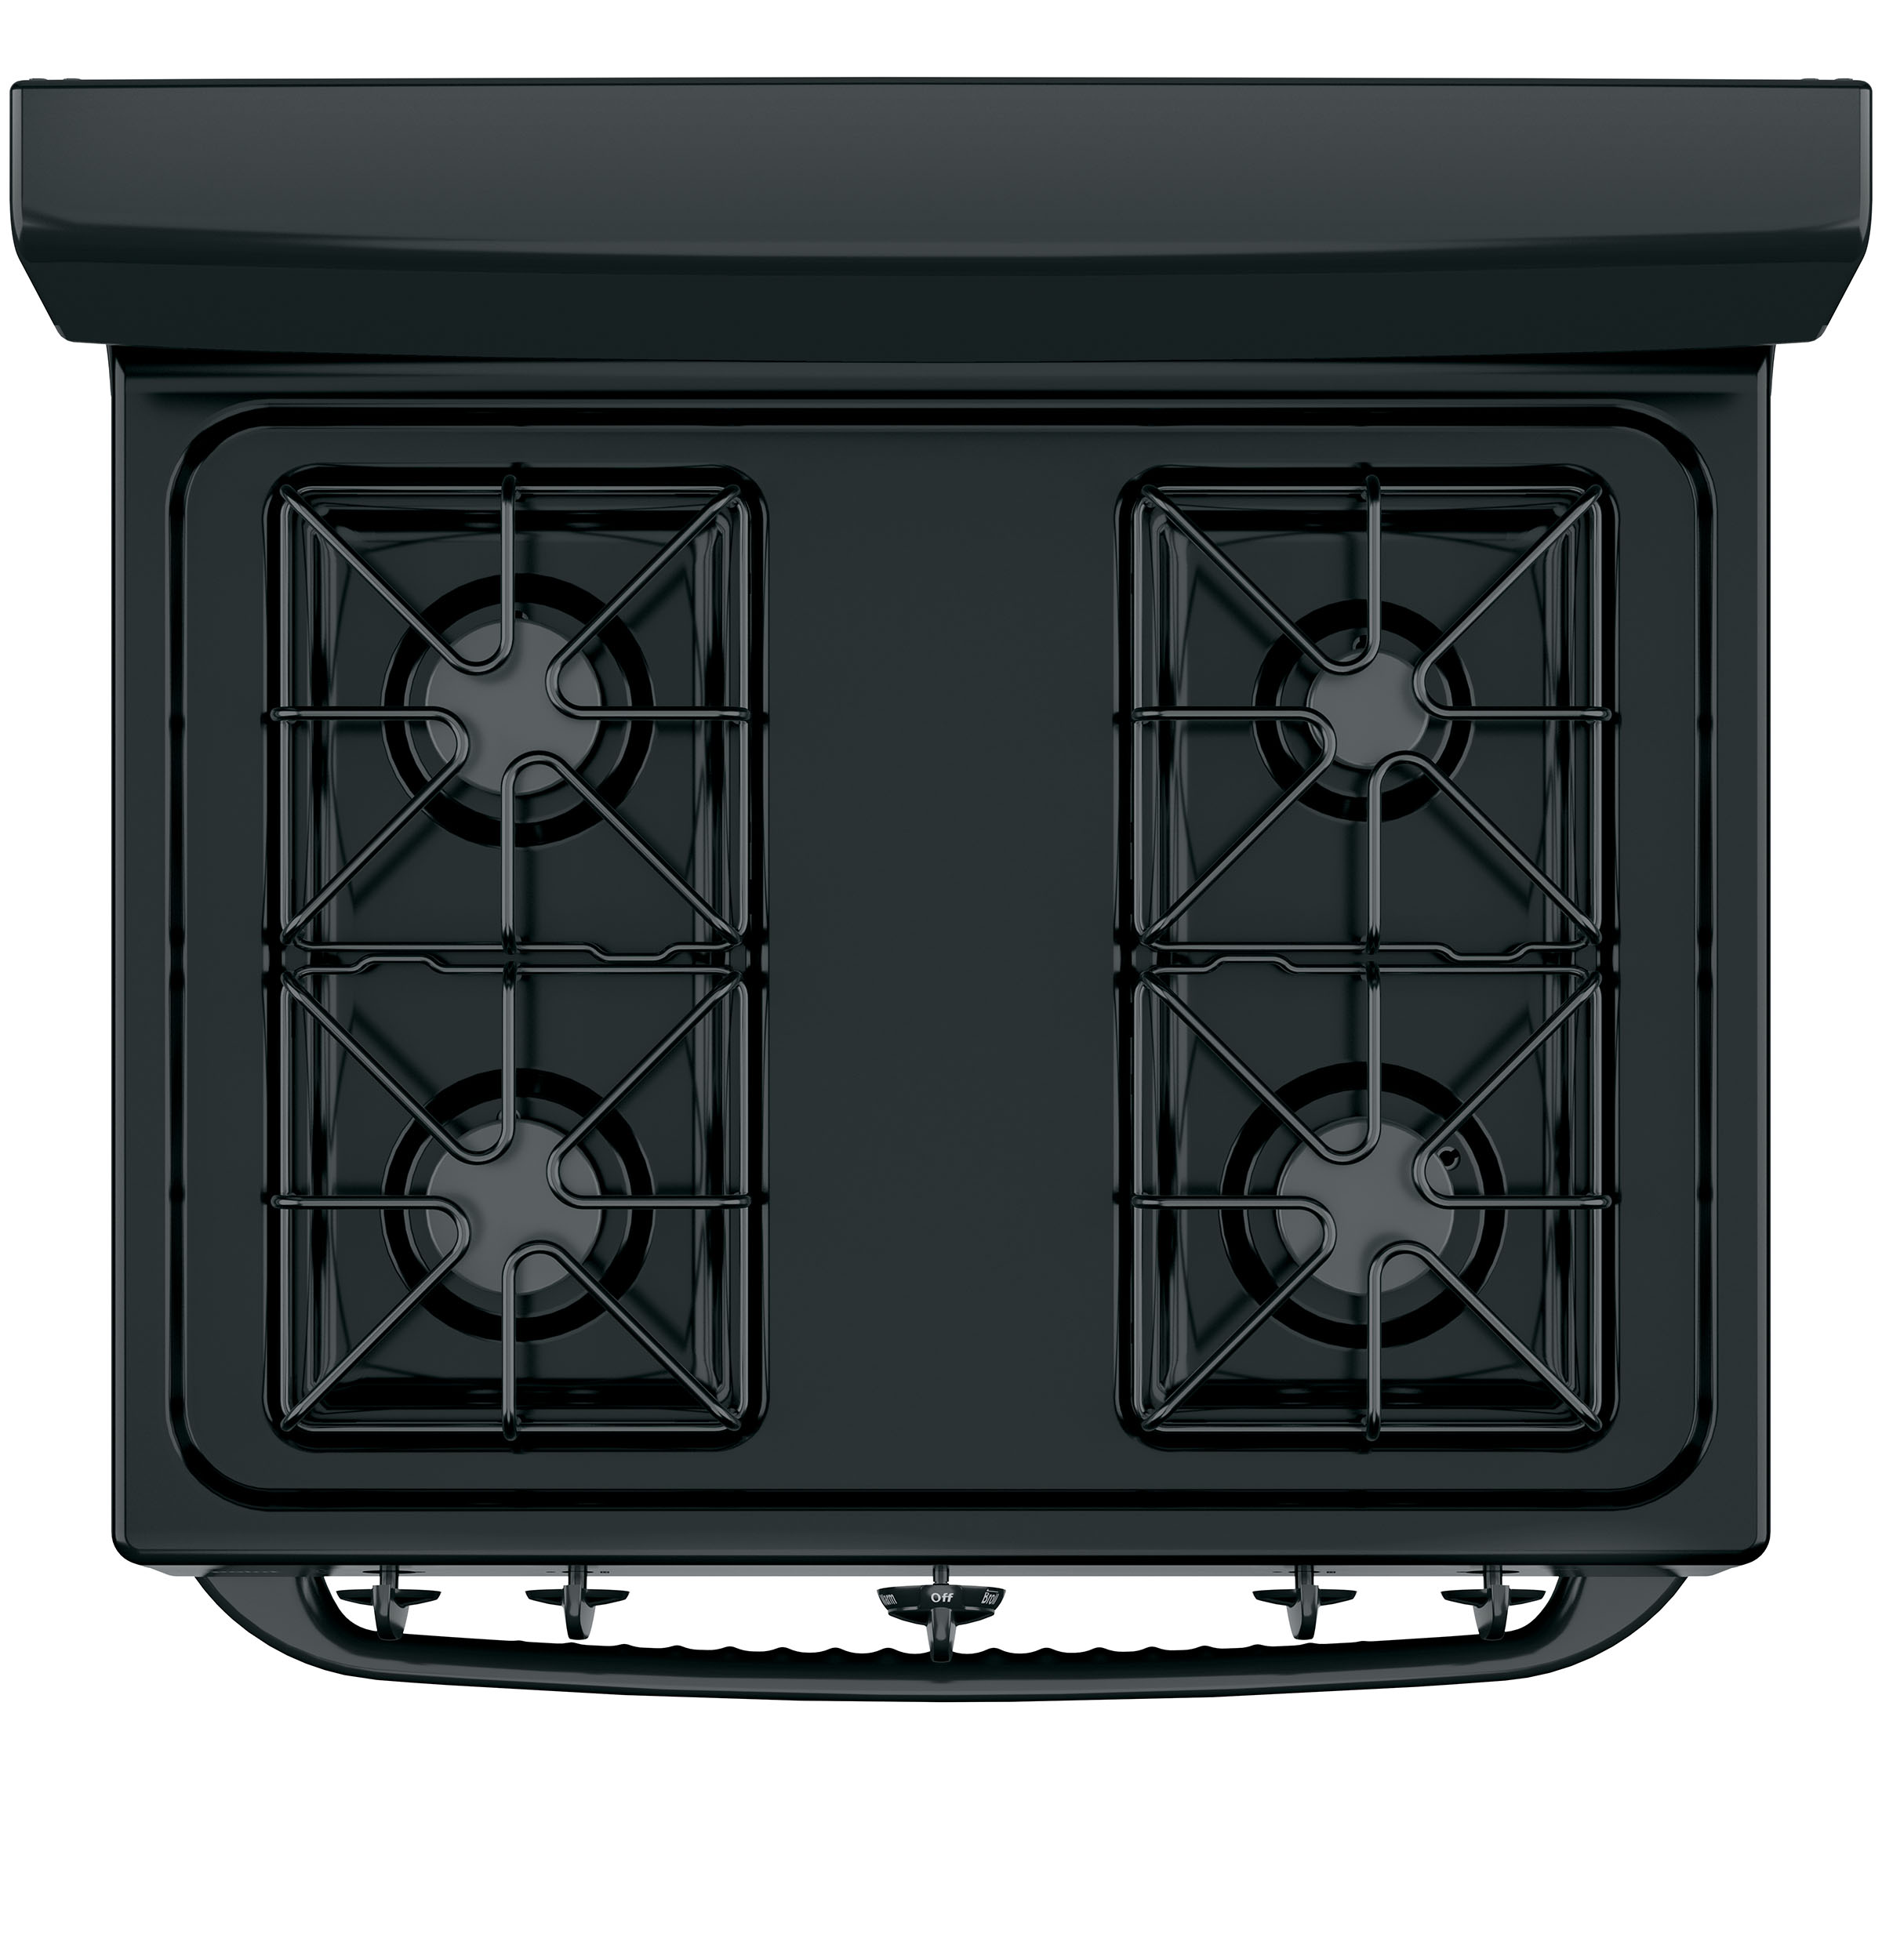 "Model: RGBS300DMBB | Hotpoint Hotpoint® 30"" Free-Standing Gas Range"